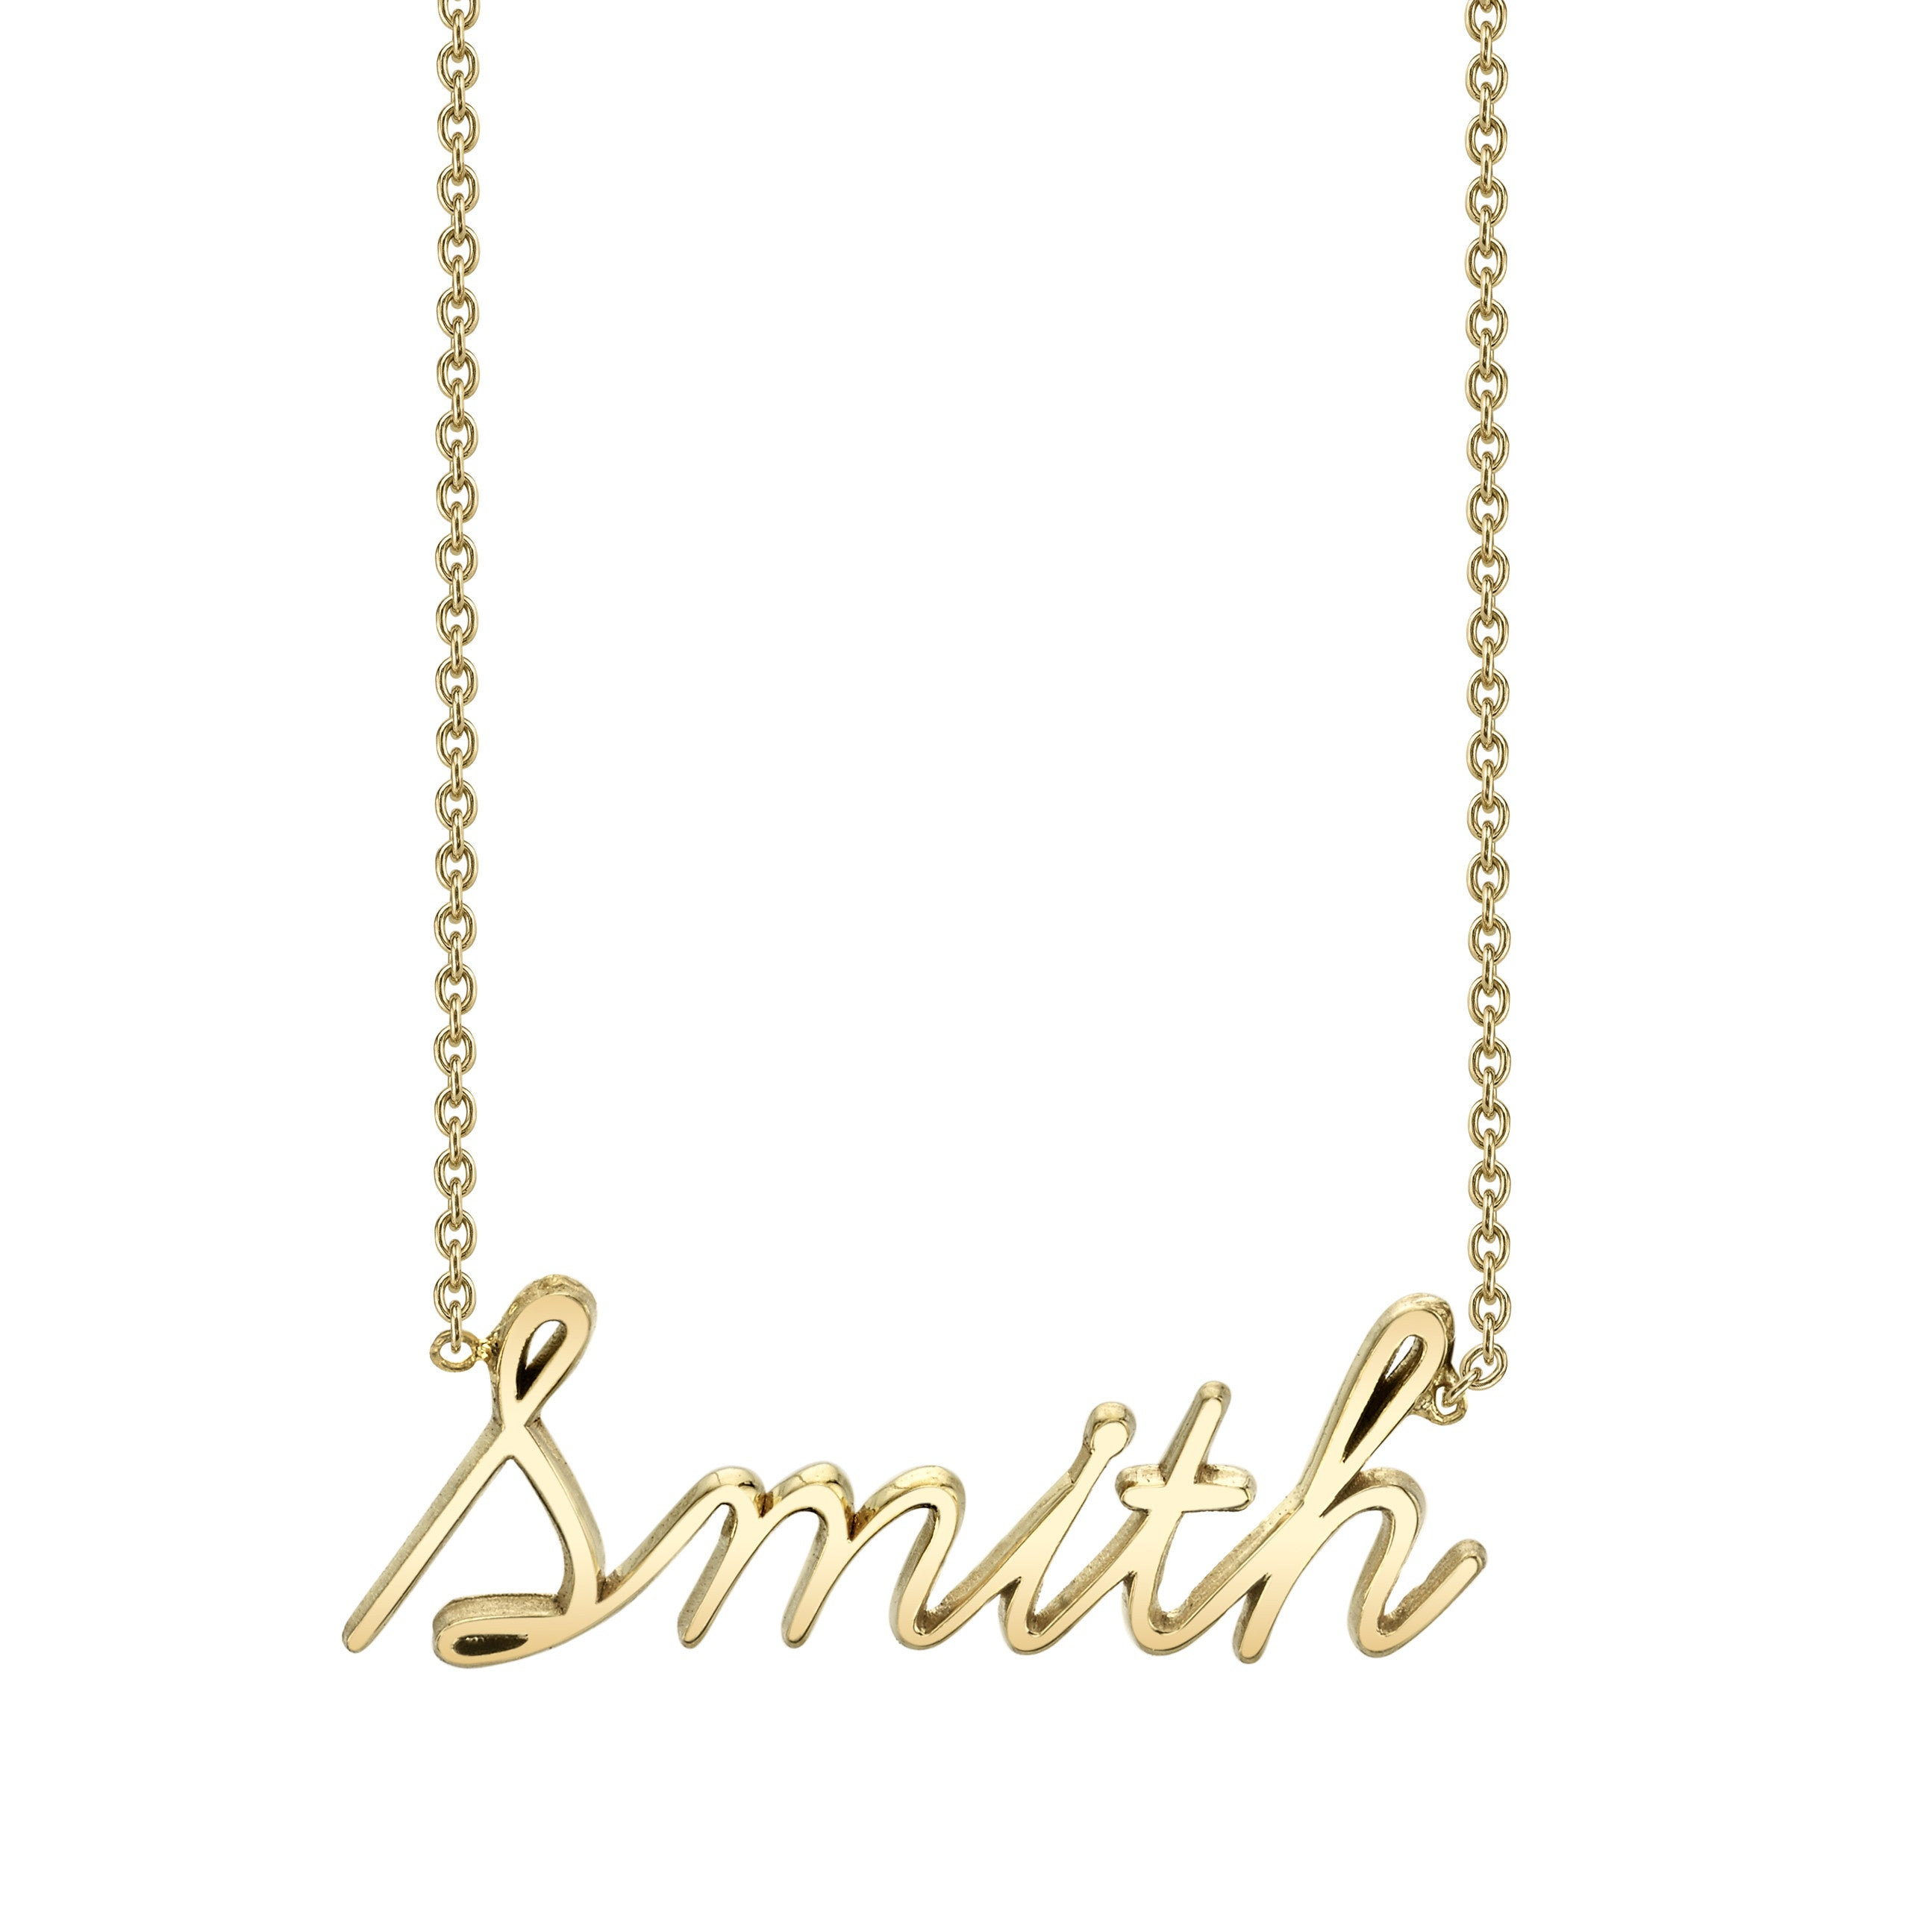 love madness jewelry fronay fashion products necklace women cursive sparkling necklaces collection